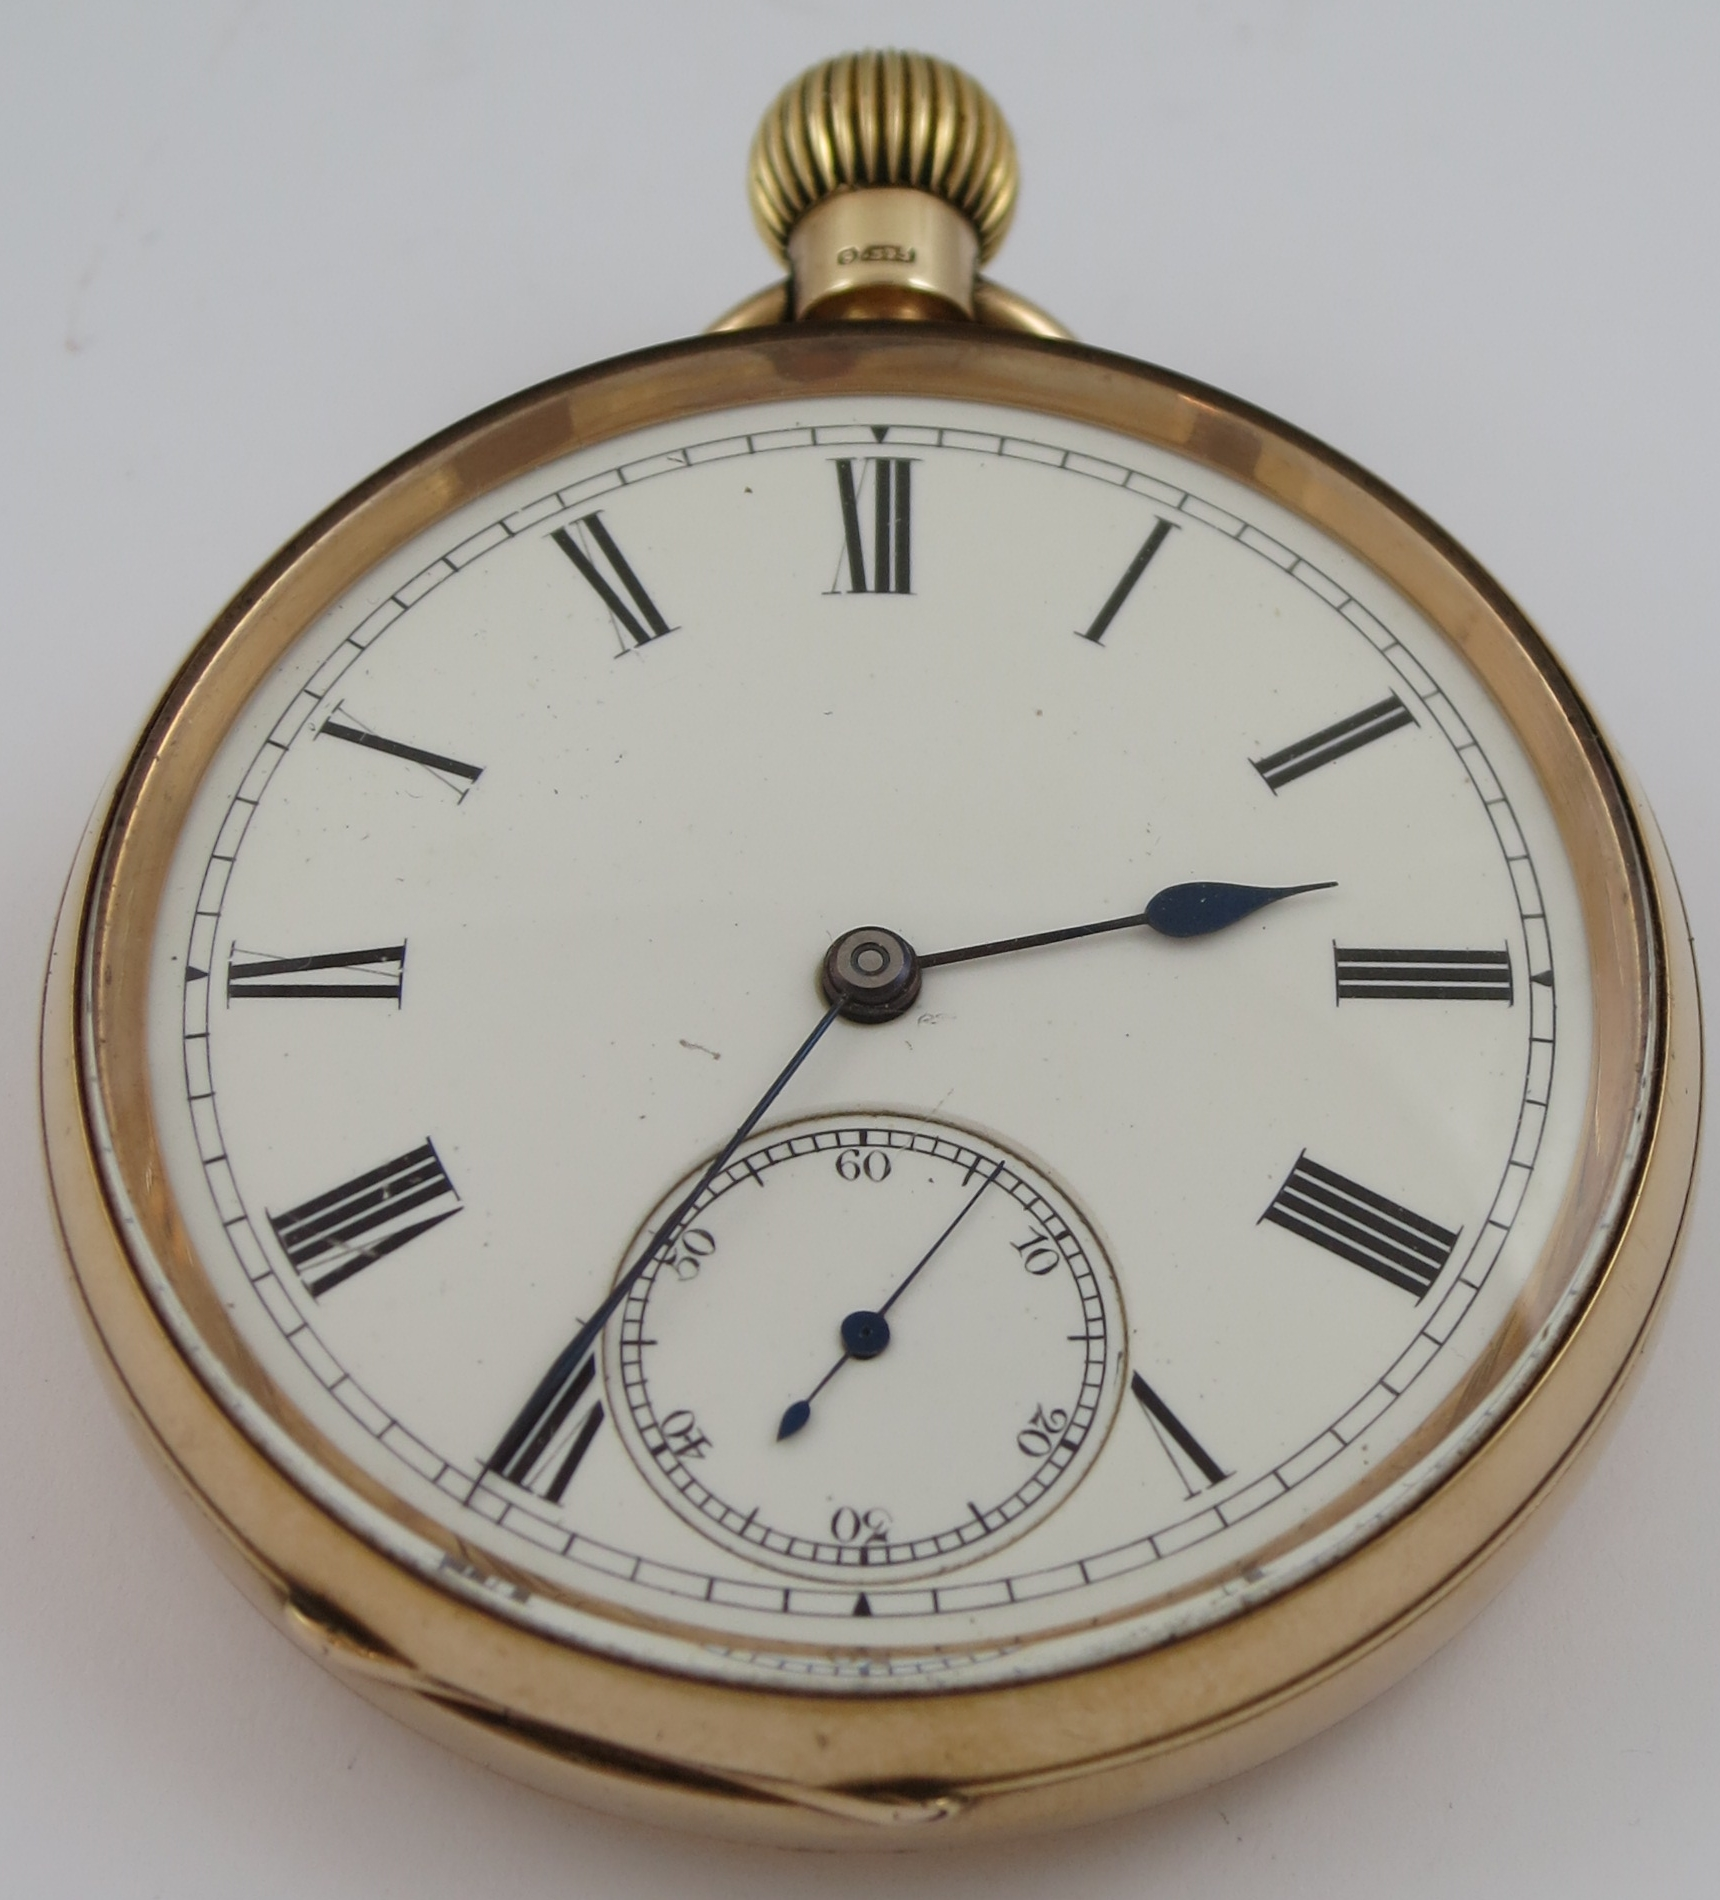 VINTAGE SMITHS 9CT GOLD CASE MECHANICAL OPEN FACE MECHANICAL POCKET WATCH